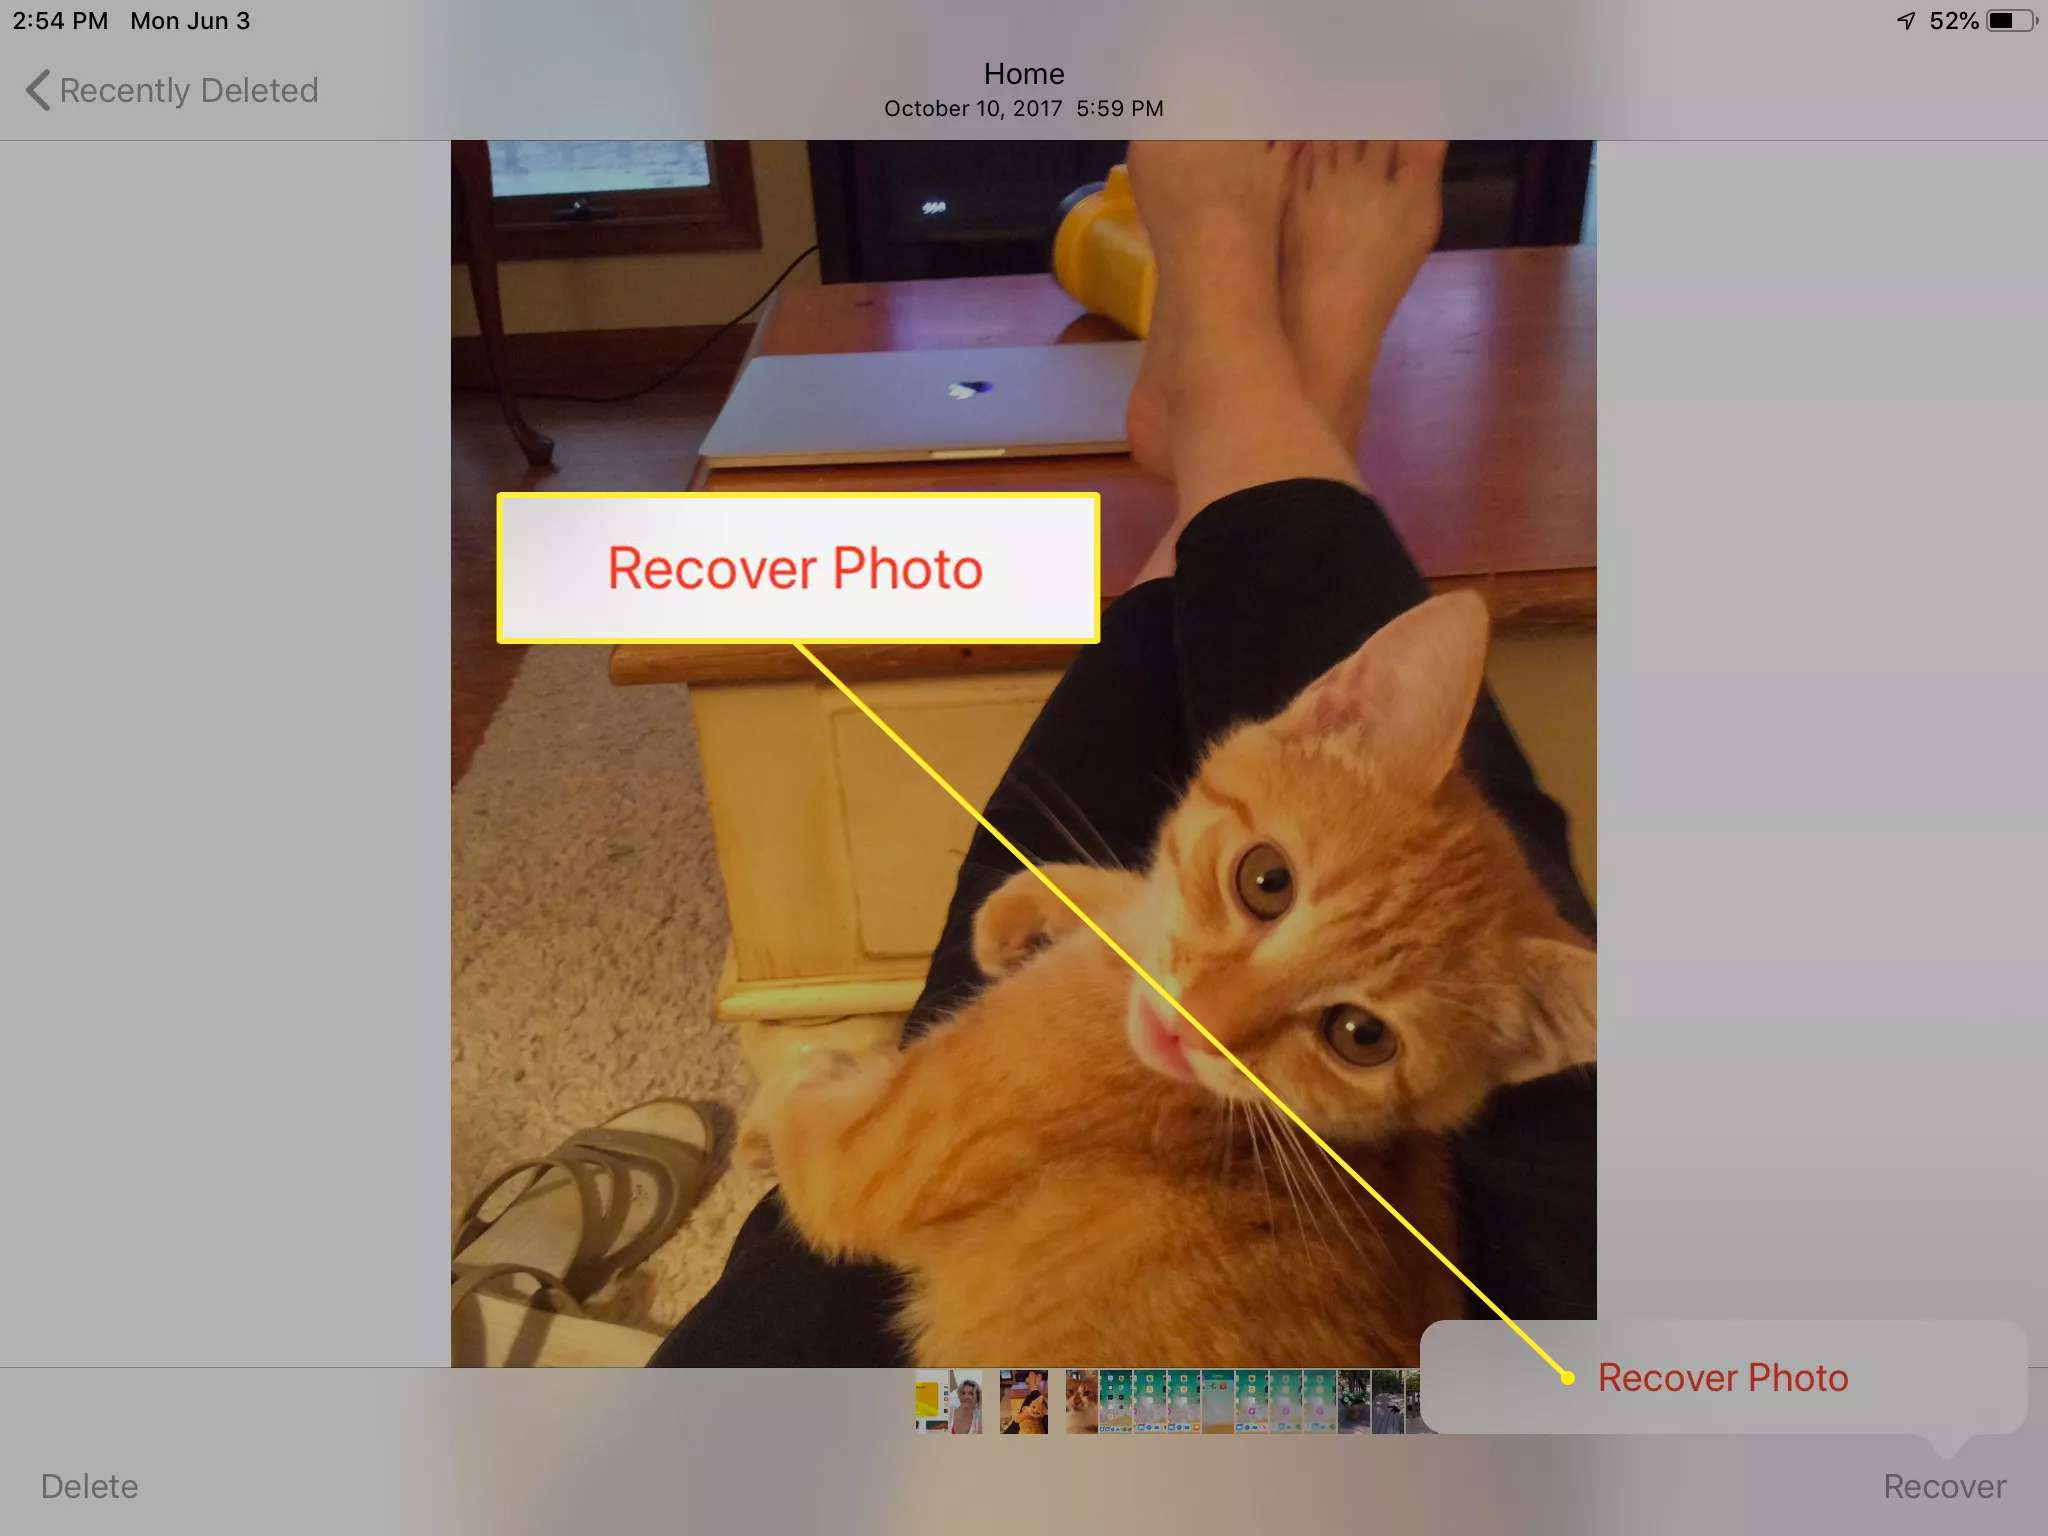 Recover Photo button in Photos on iPad